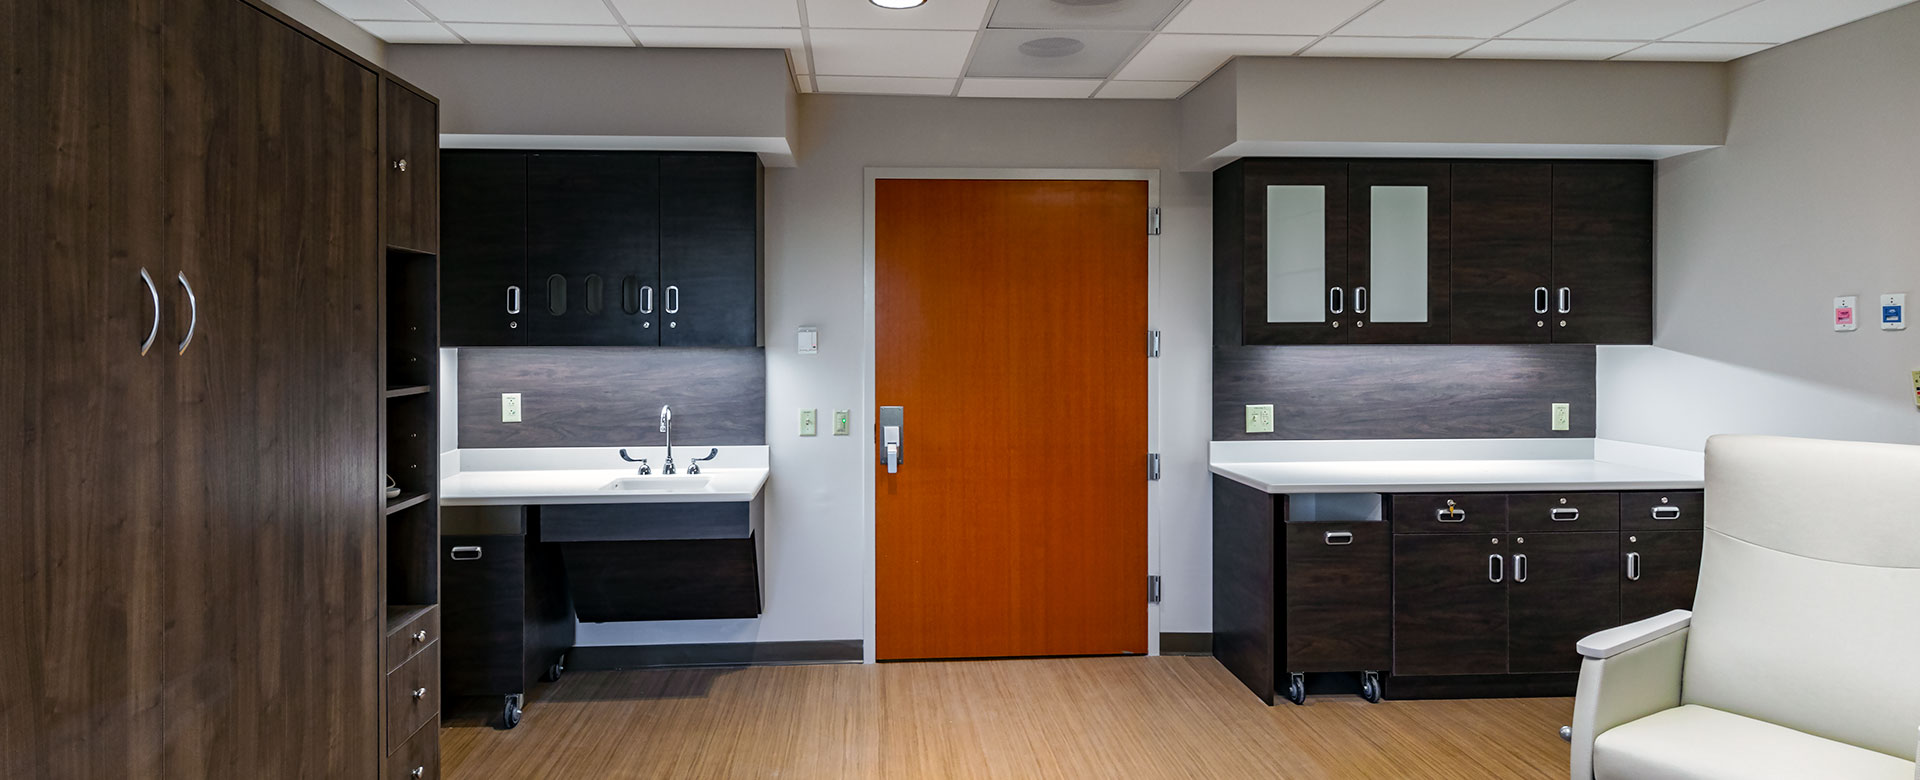 Genesis Medical Center Bereavement Suite